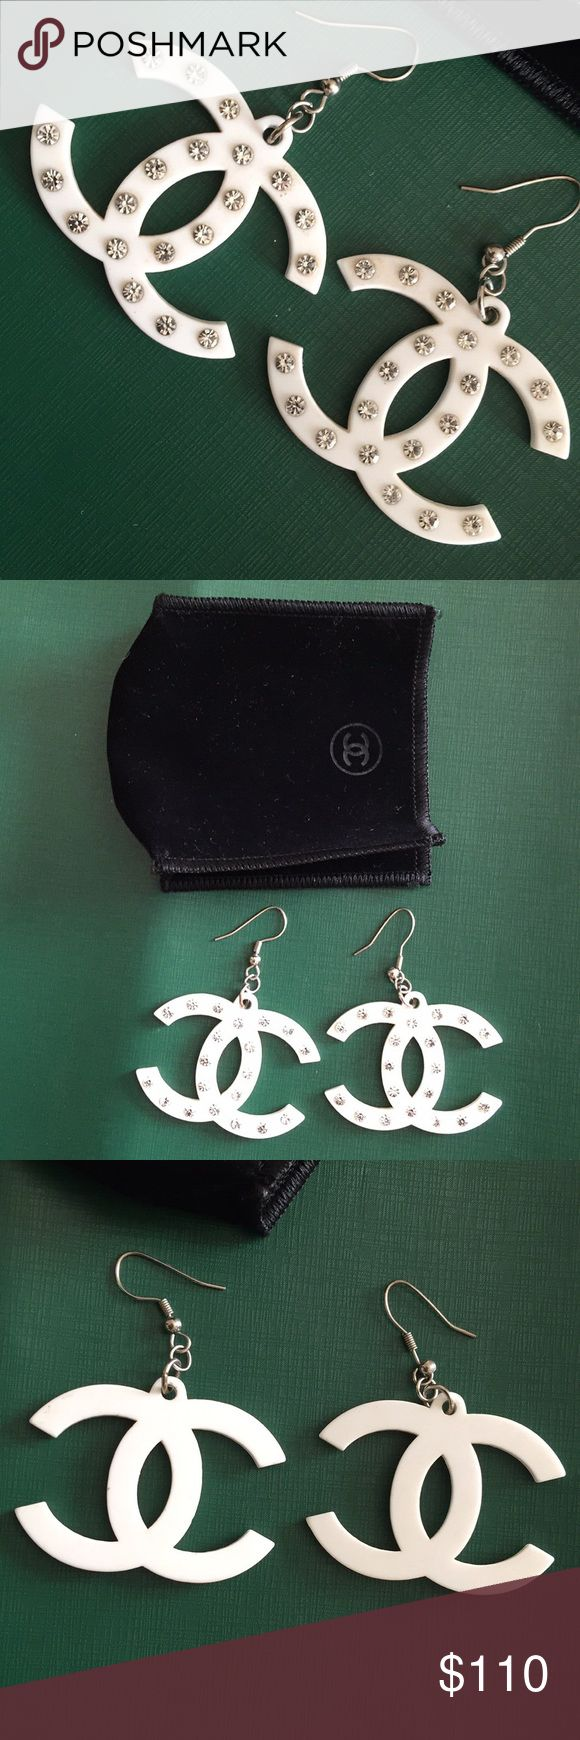 Chanel logo earrings. Tenderly used. Swarovski crystals are intact and no discoloration. Comes with original pouch. Jewelry Earrings